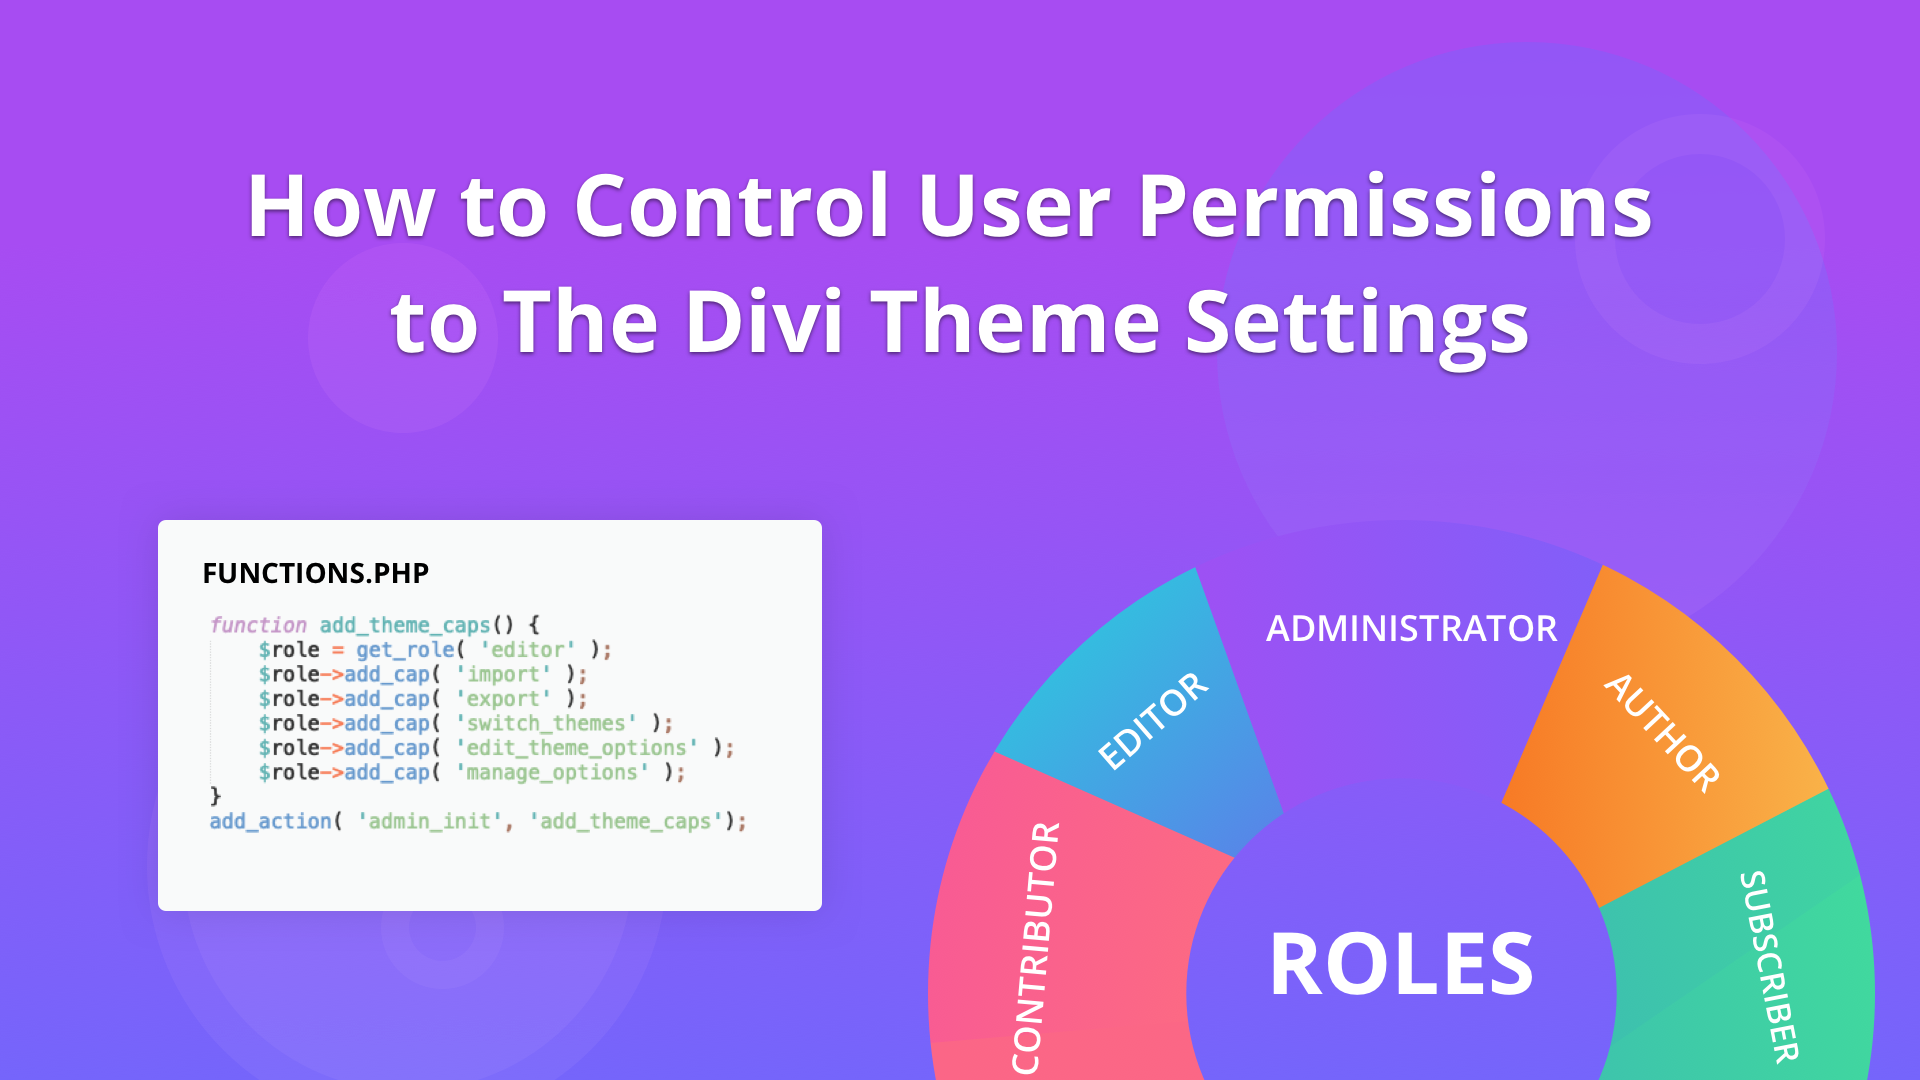 How to Control User Permissions for the Divi Theme | Divi Space